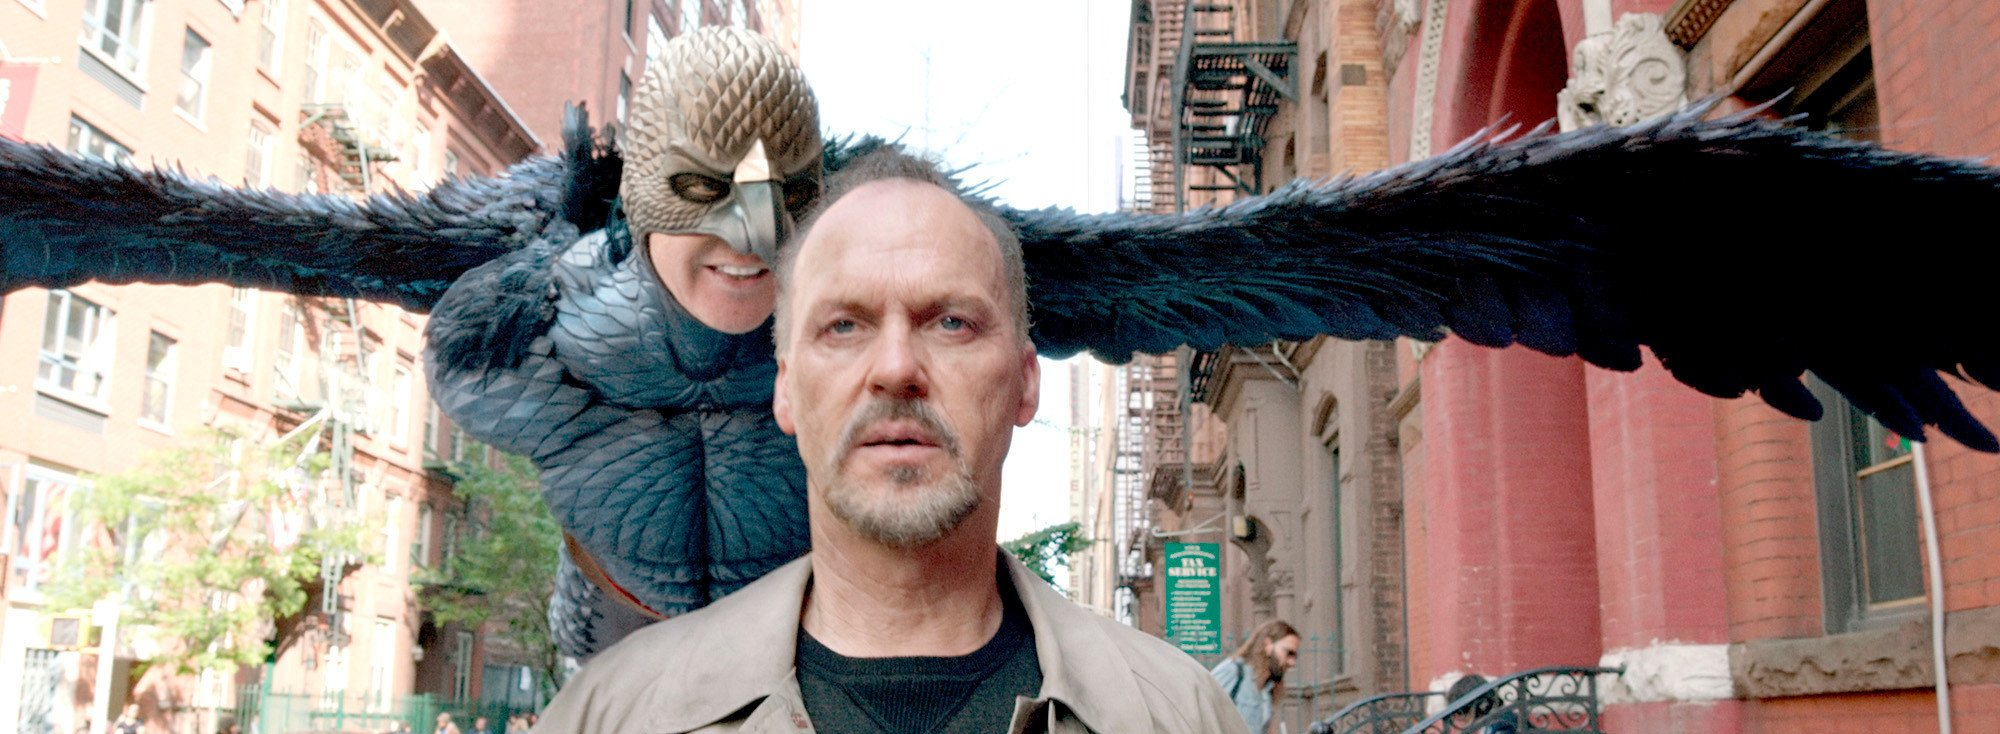 Film: Birdman feature image